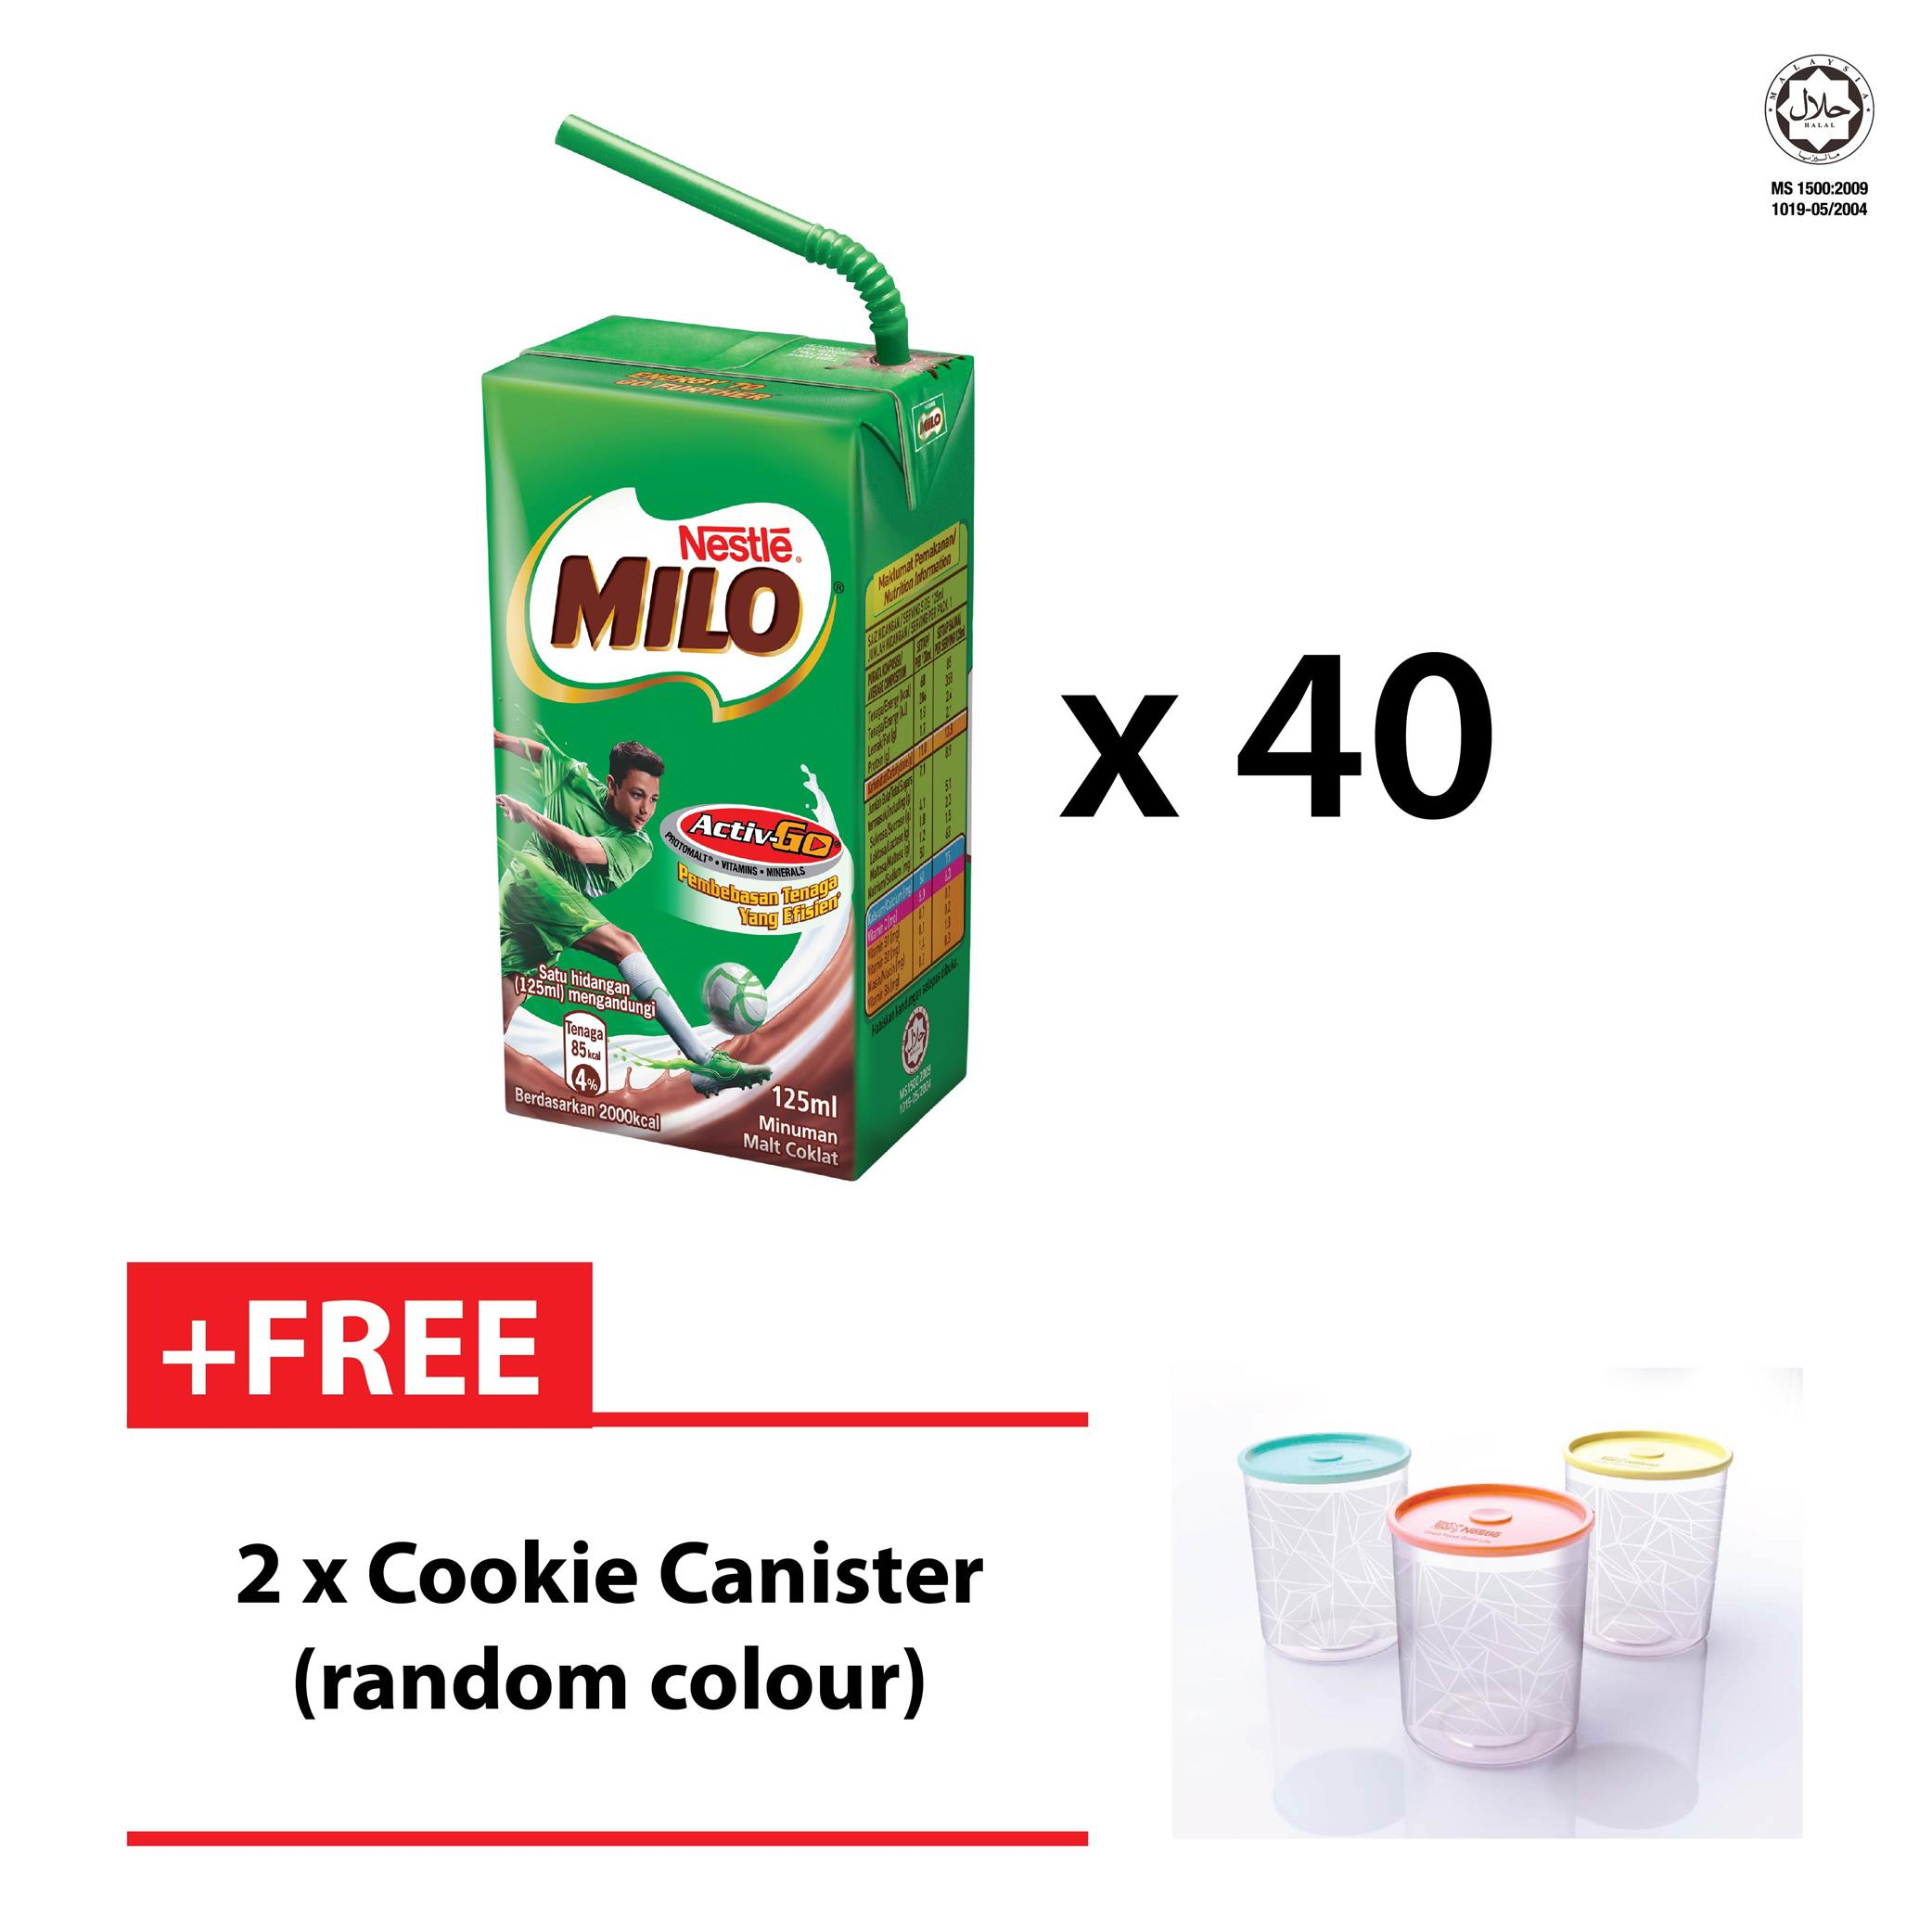 Nestle Milo Malaysia Activ Go 15 Kg Daftar Update Harga Terbaru Activgo 1kg Baking Nainai Uht 125ml 1 Carton 40 Units Free 2 Cookie Canister Special